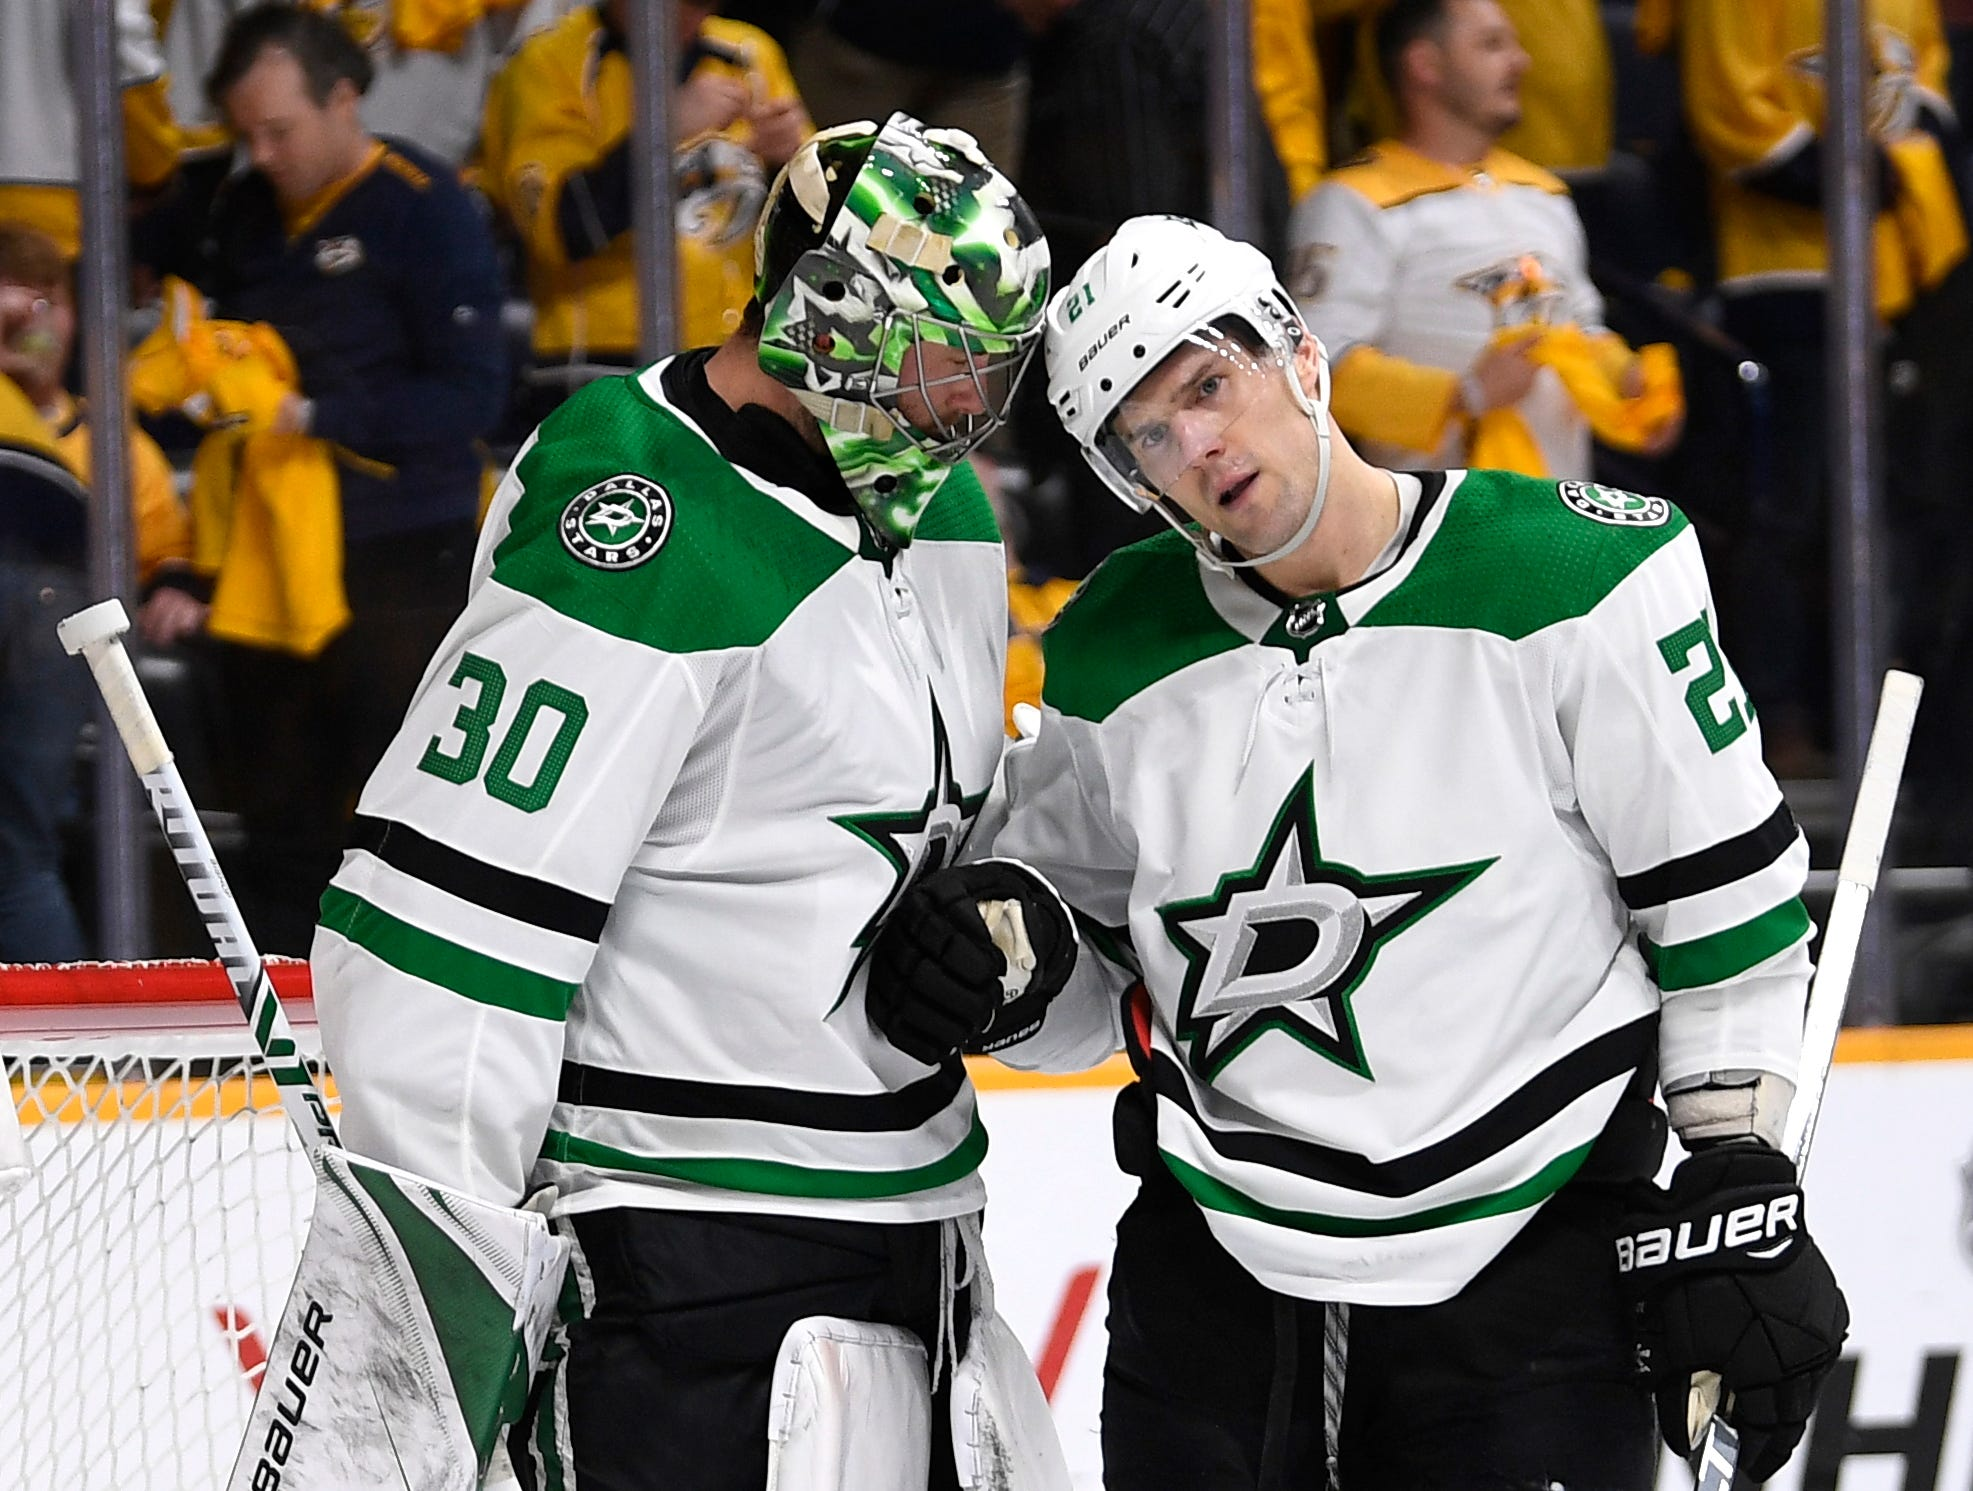 Dallas Stars goaltender Ben Bishop (30) and defenseman Ben Lovejoy (21) celebrate the win over the Nashville Predators in the divisional semifinal game at Bridgestone Arena in Nashville, Tenn., Wednesday, April 10, 2019.